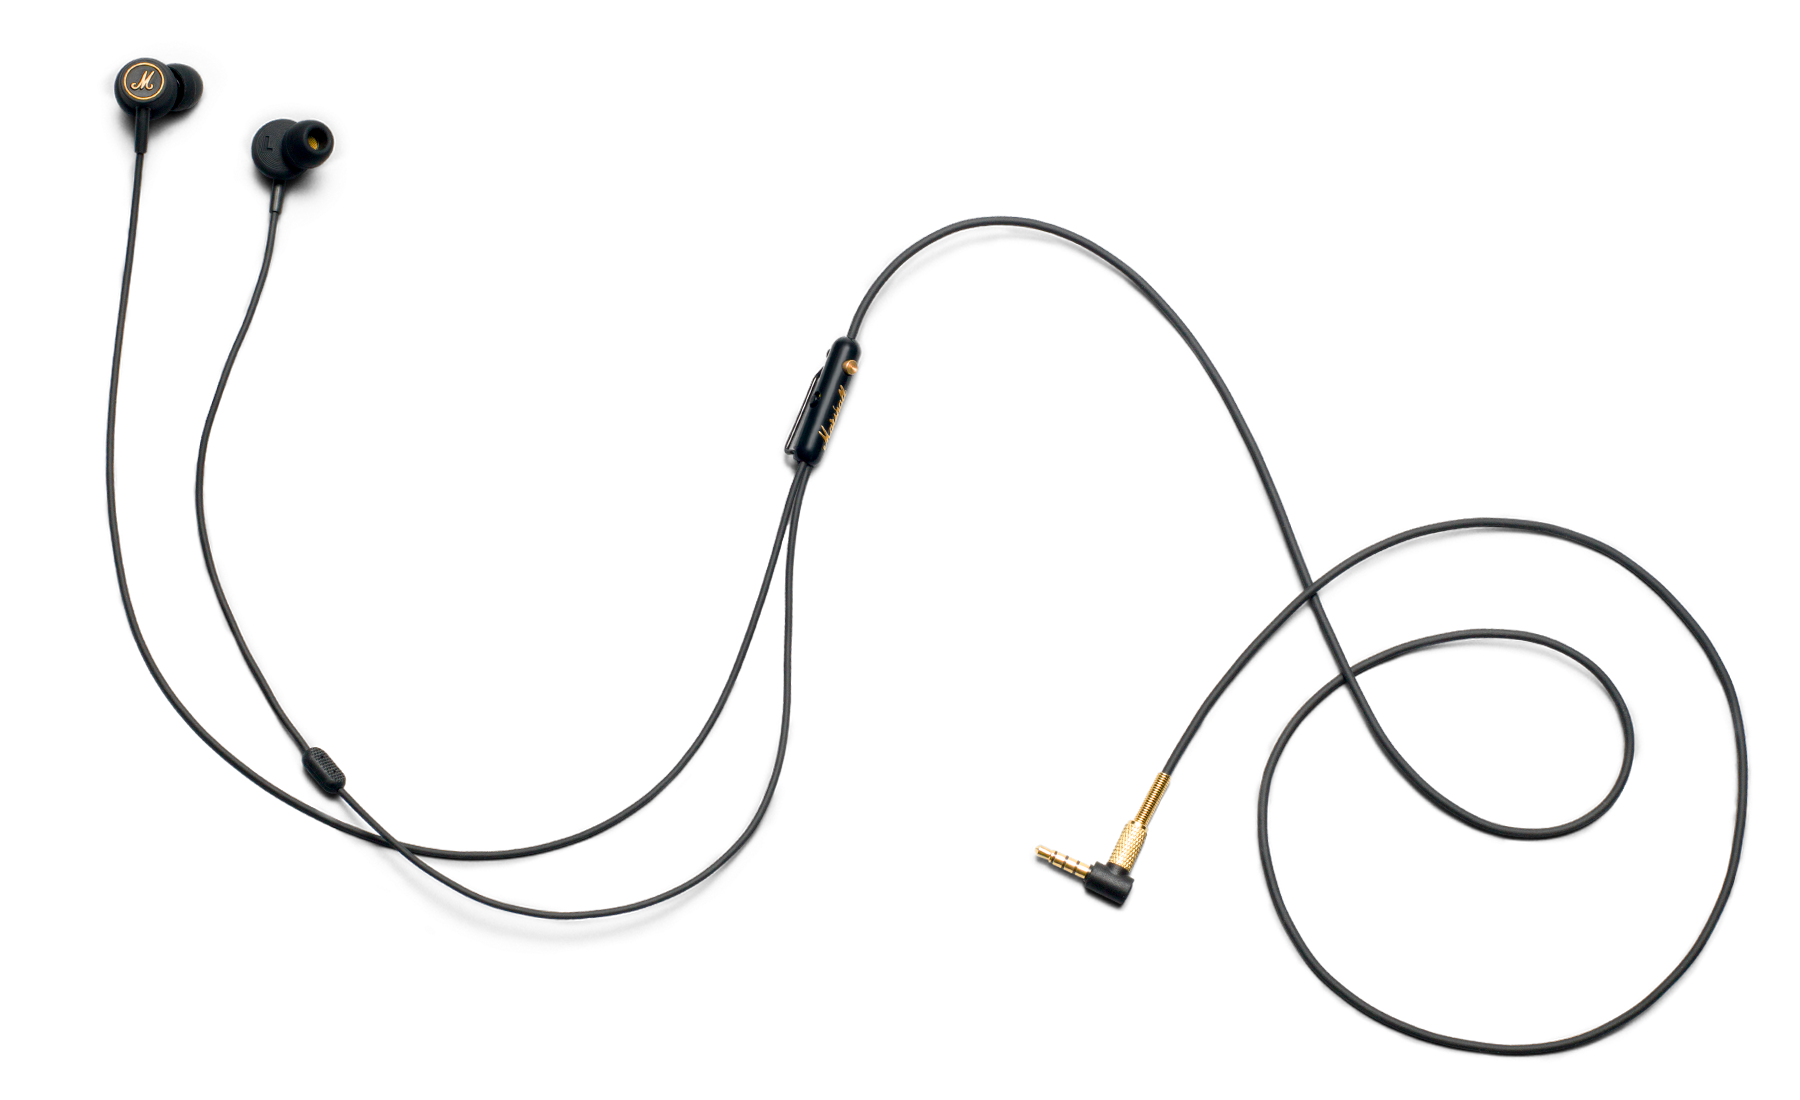 Transparent wires headset. Mode eq earphone with